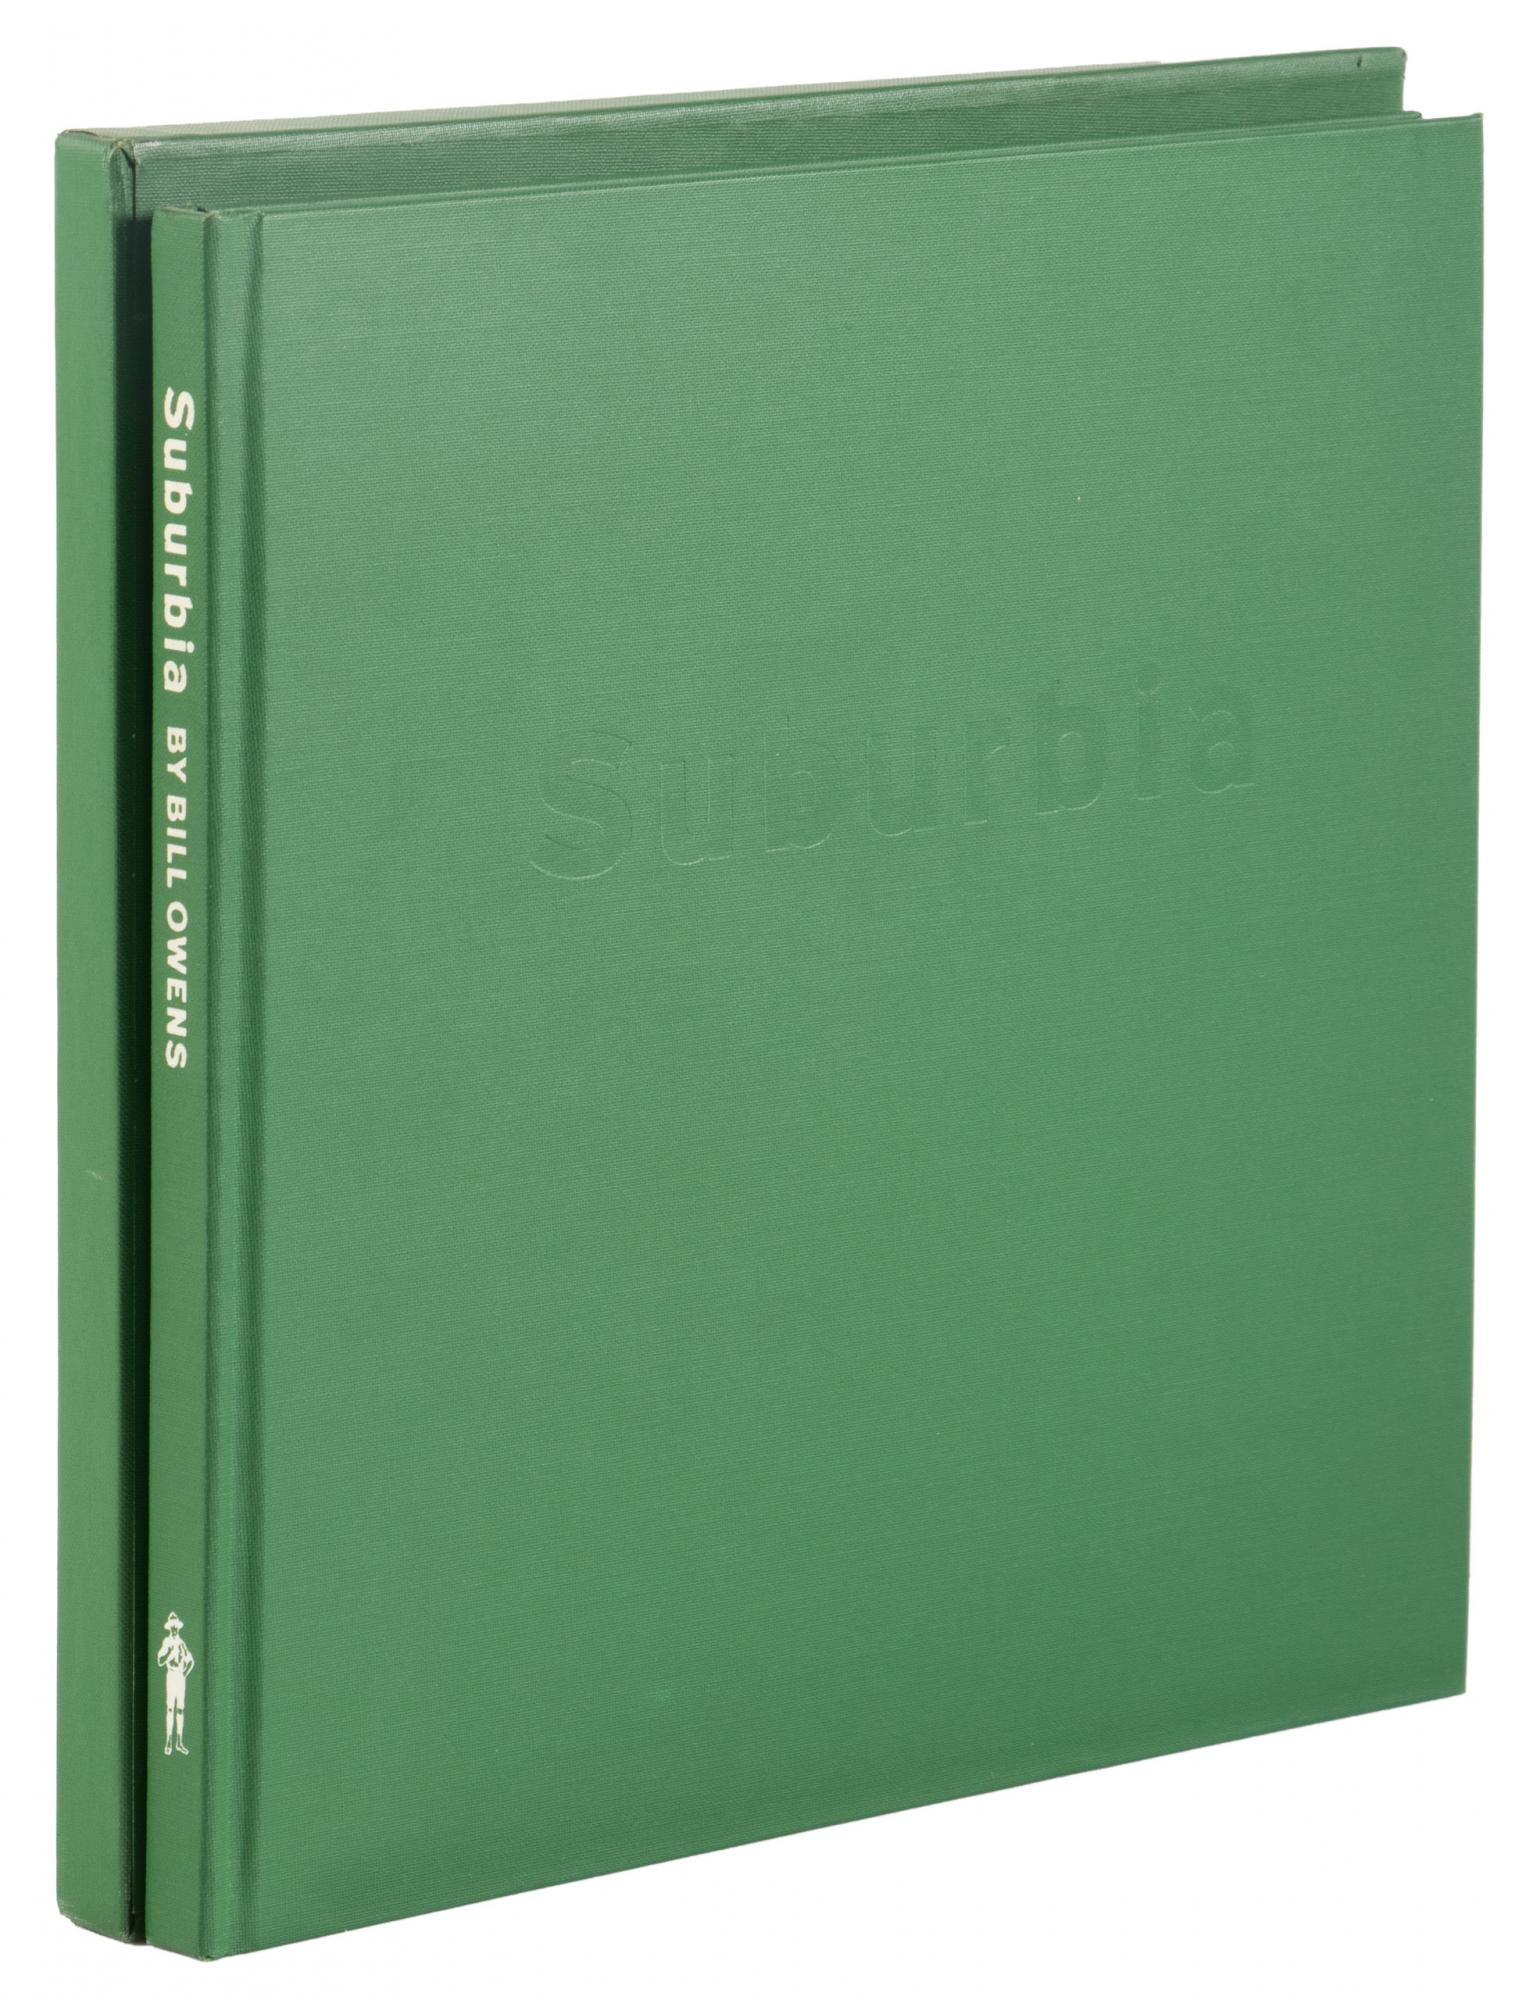 Suburbia, first edition in slipcase